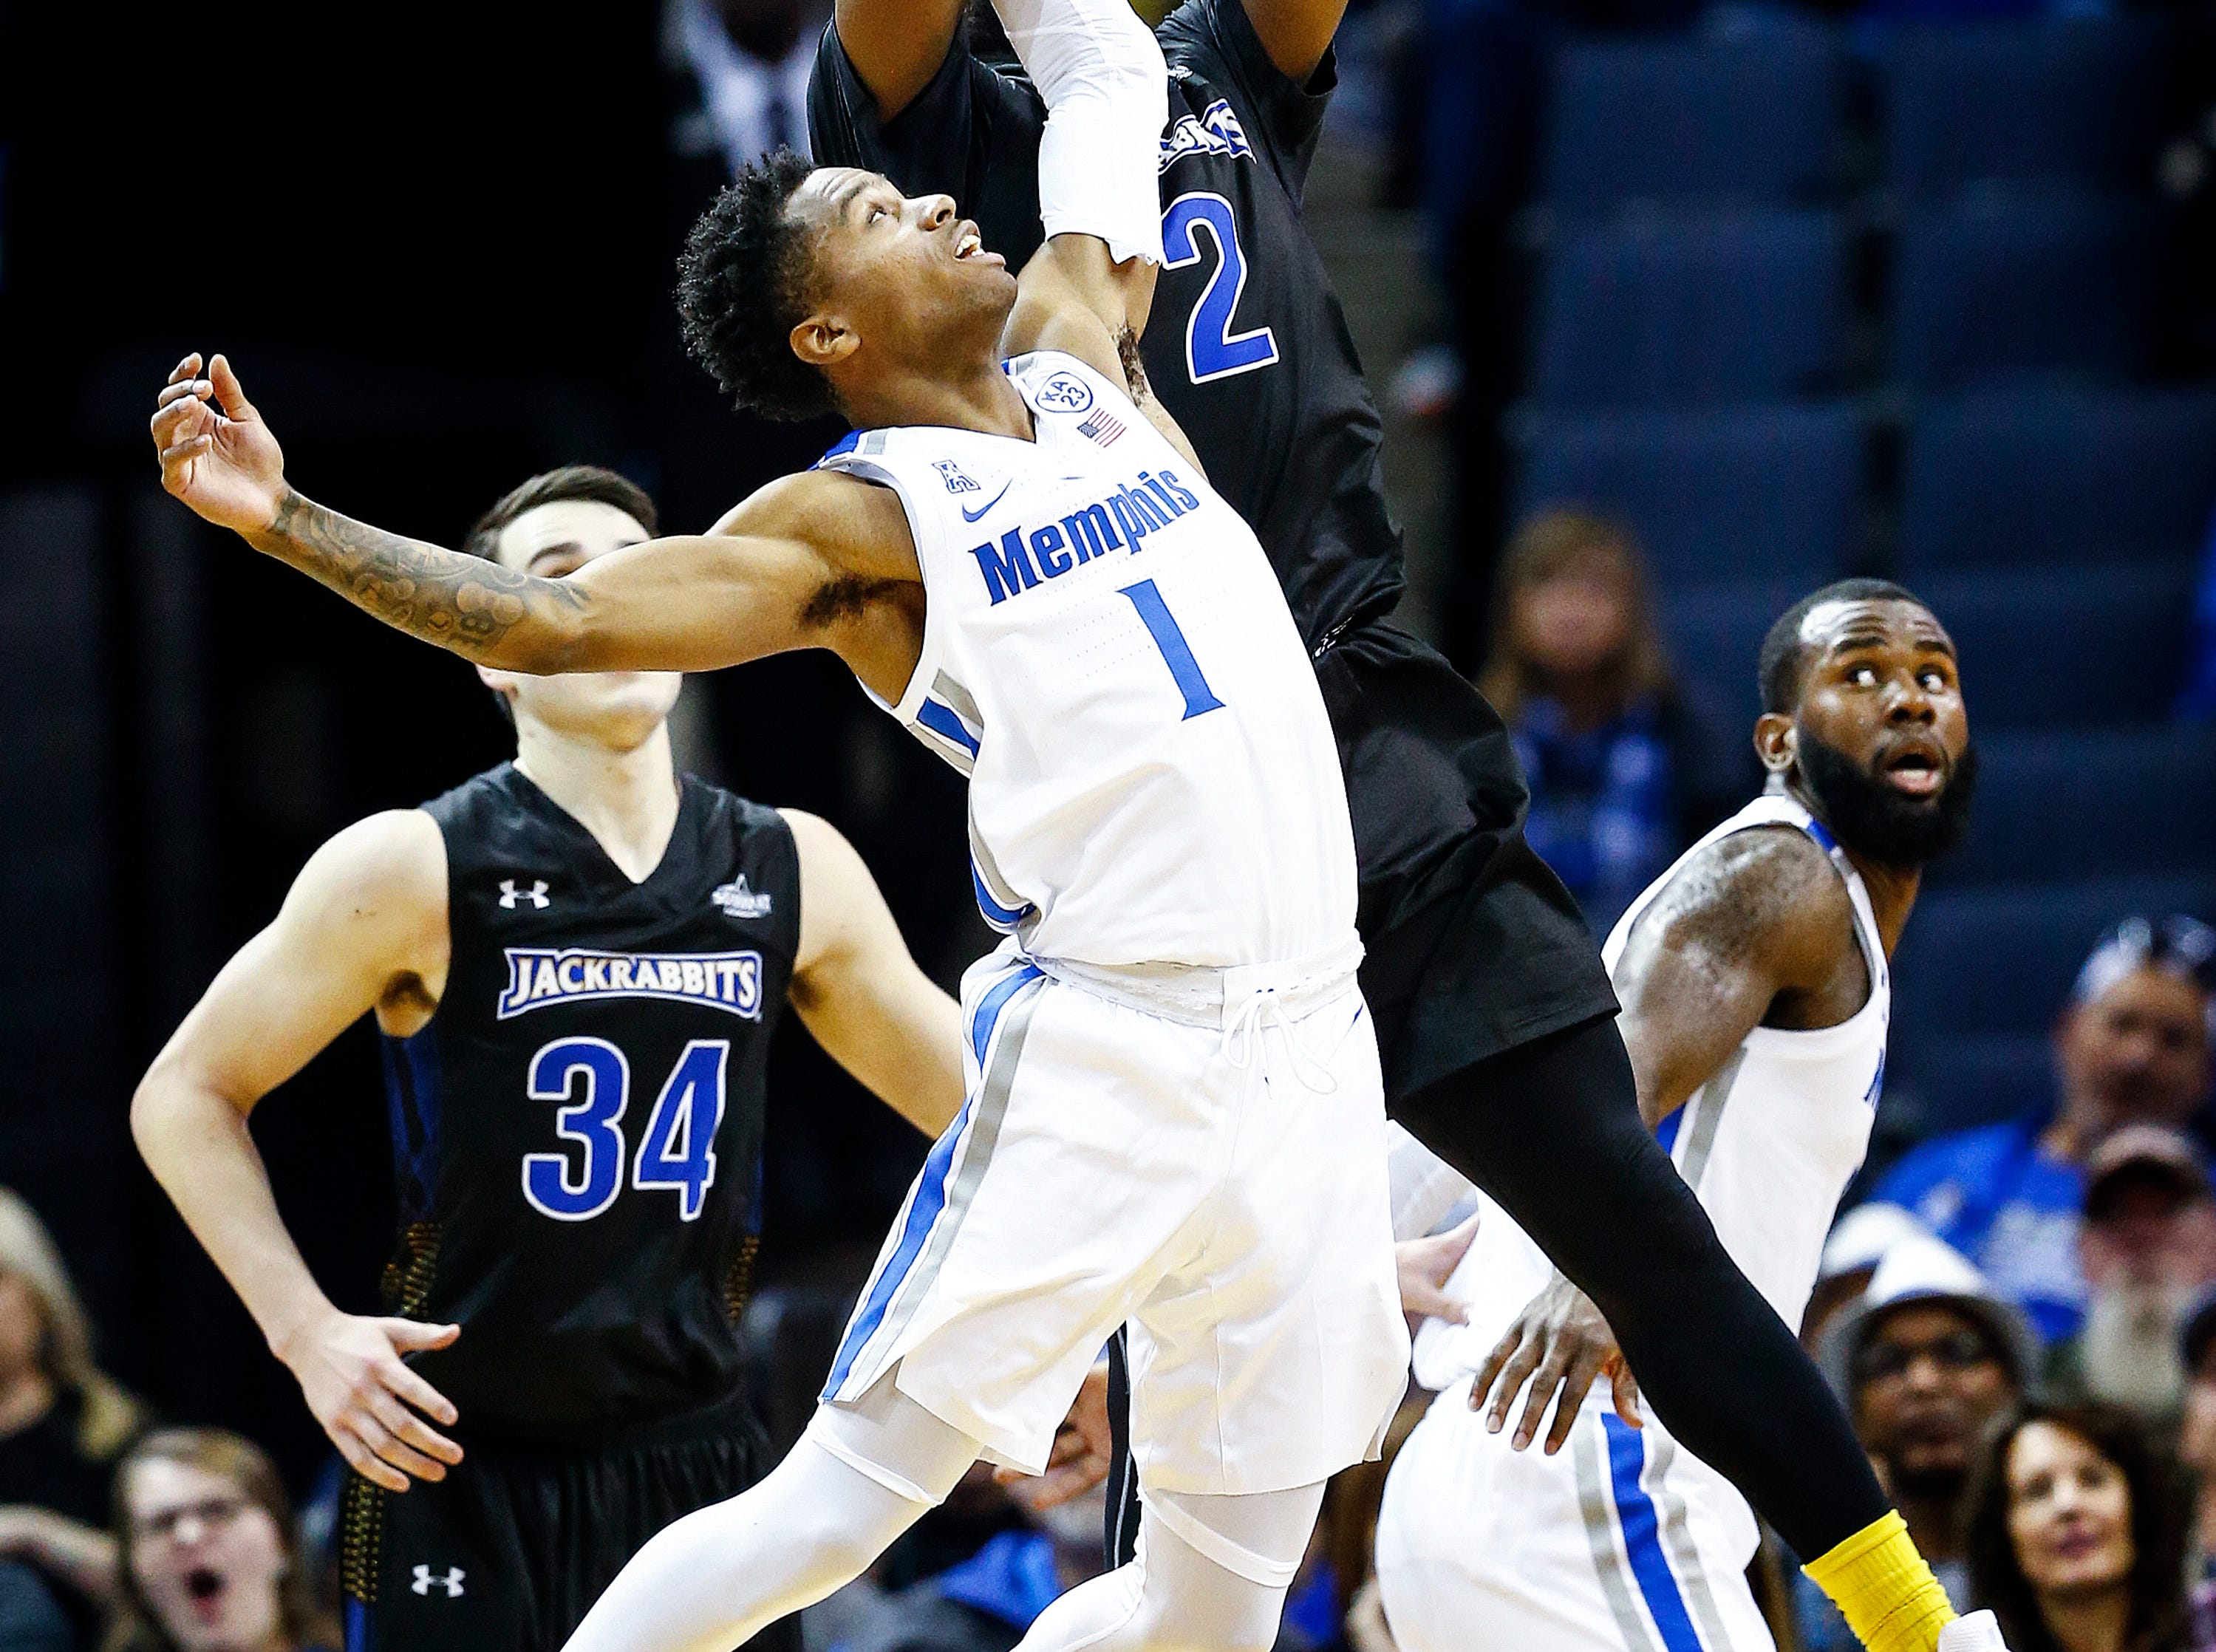 Memphis defender Tyler Harris (front) reaches for a steal against South Dakota State guard Tevin King (back) during action at the FedExFourm., Tuesday, December 4, 2018.